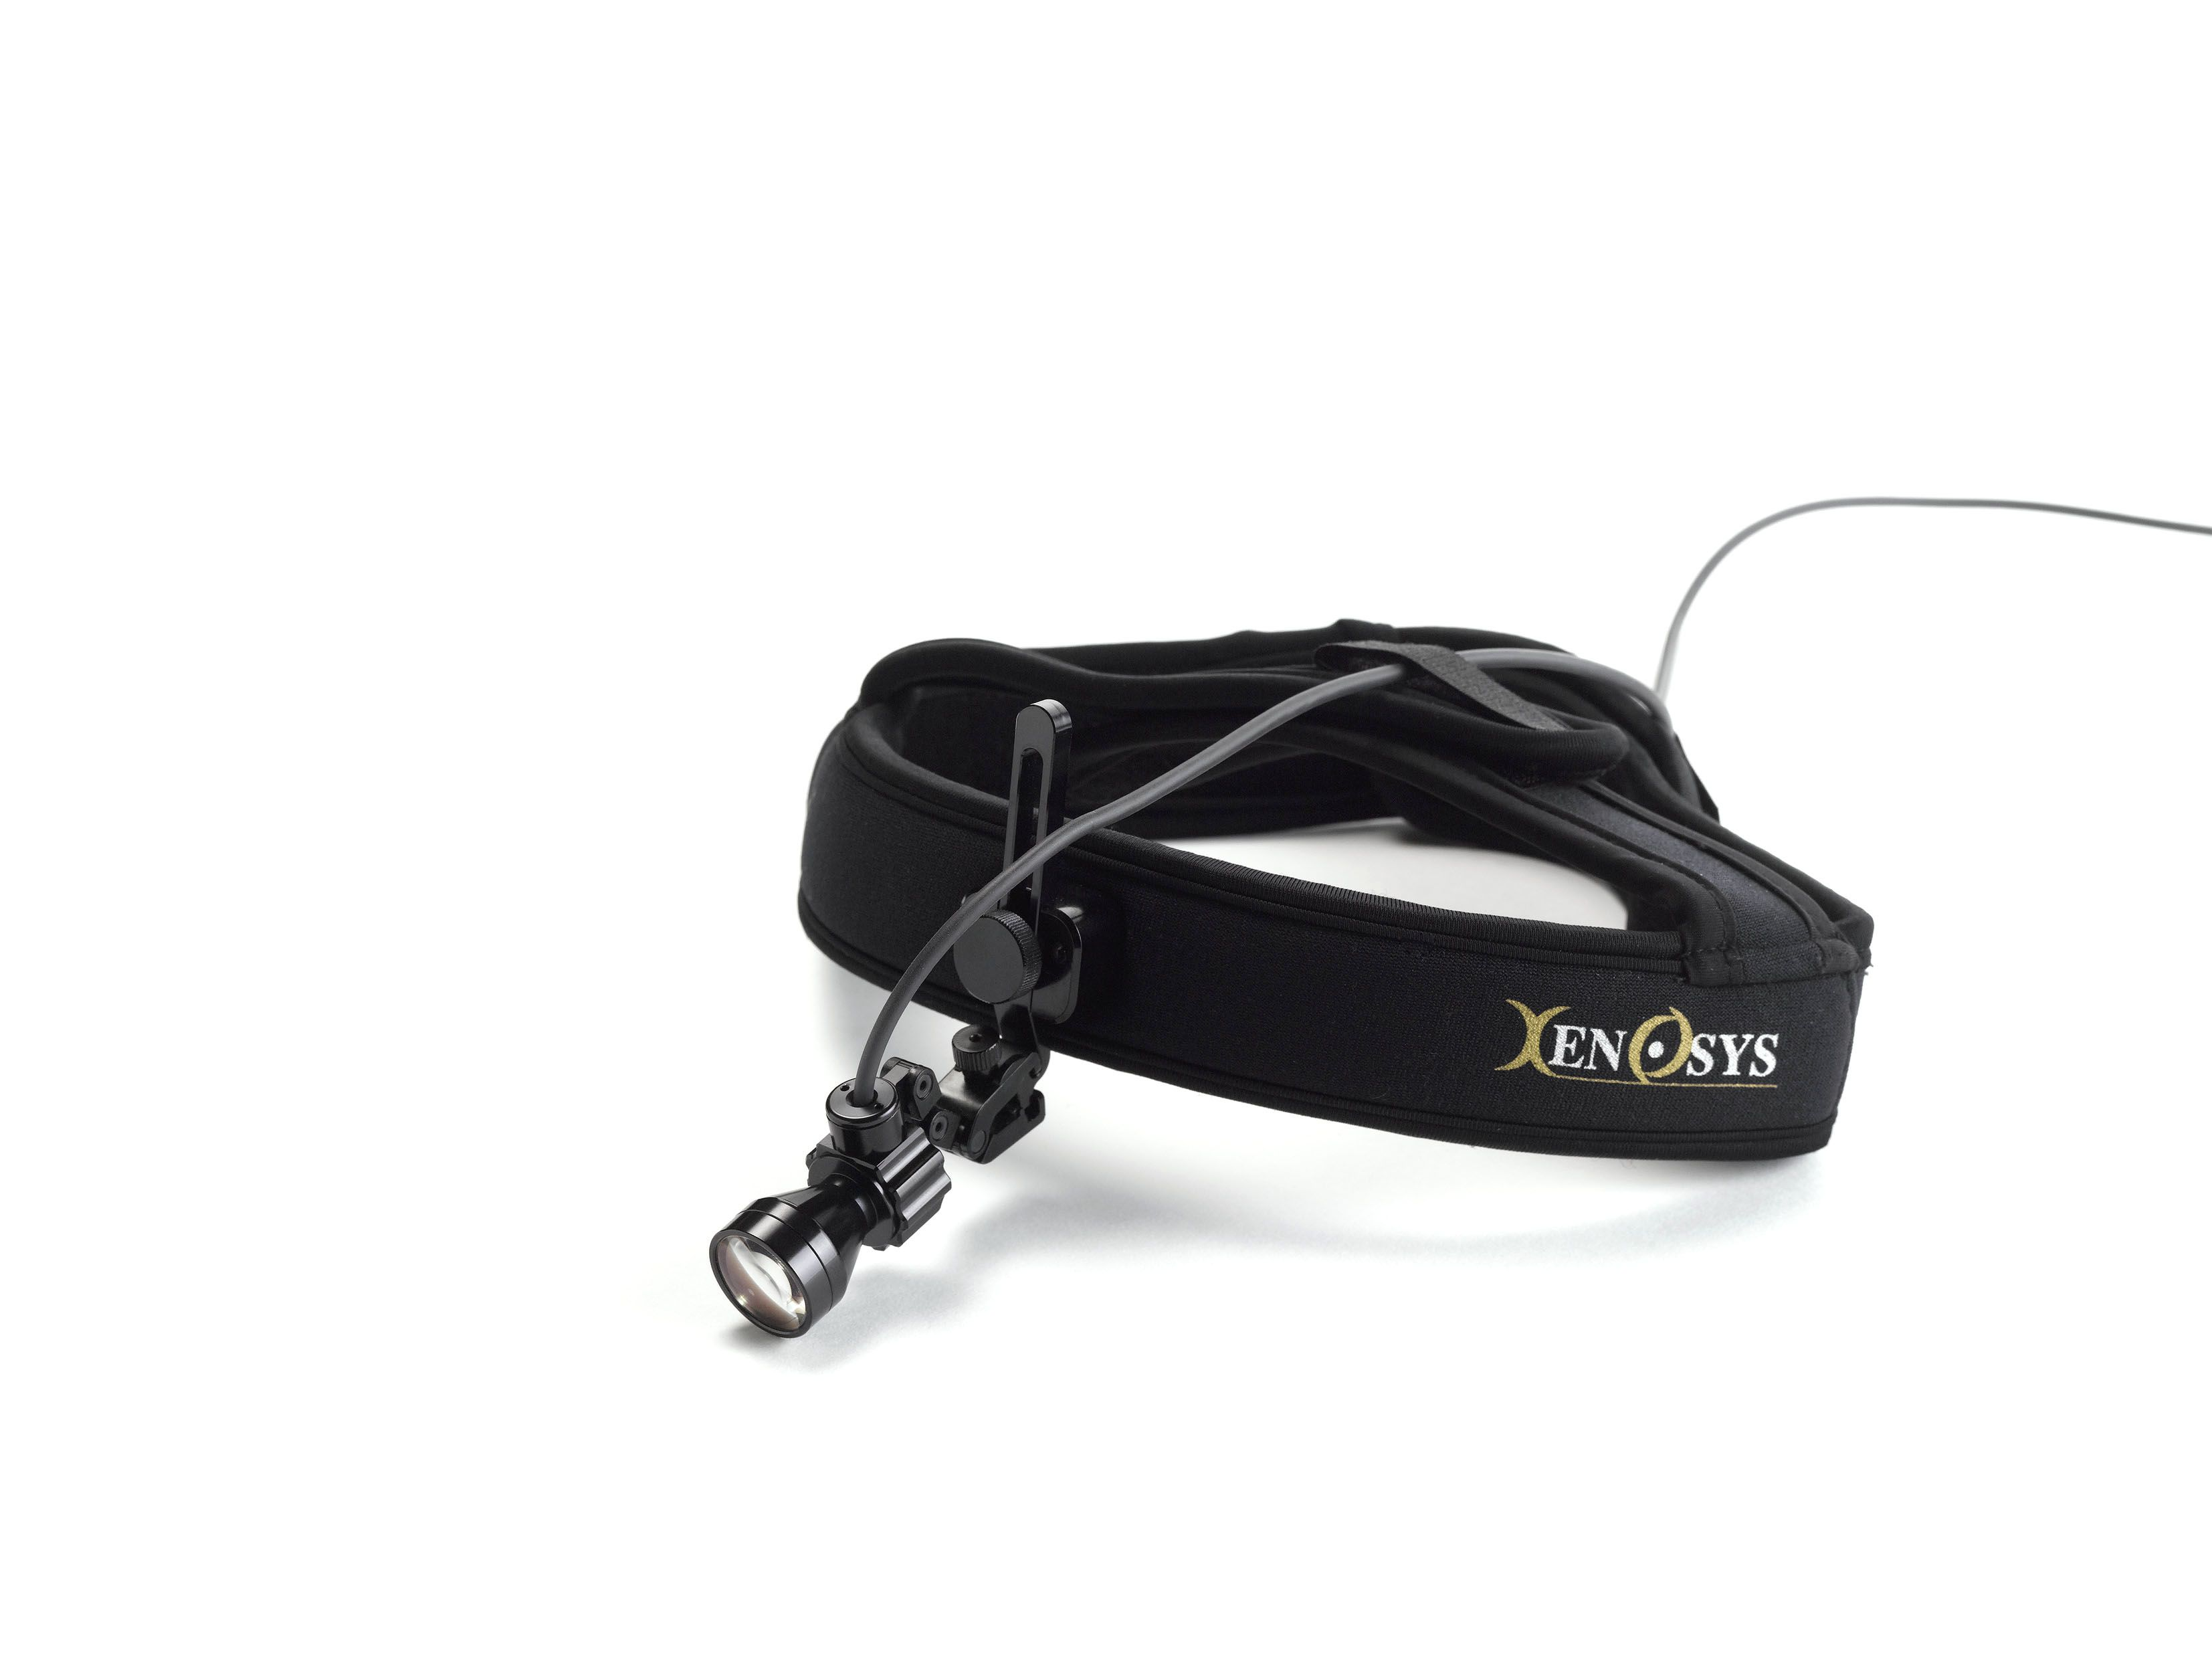 Xenosys LED Light Sports Headband